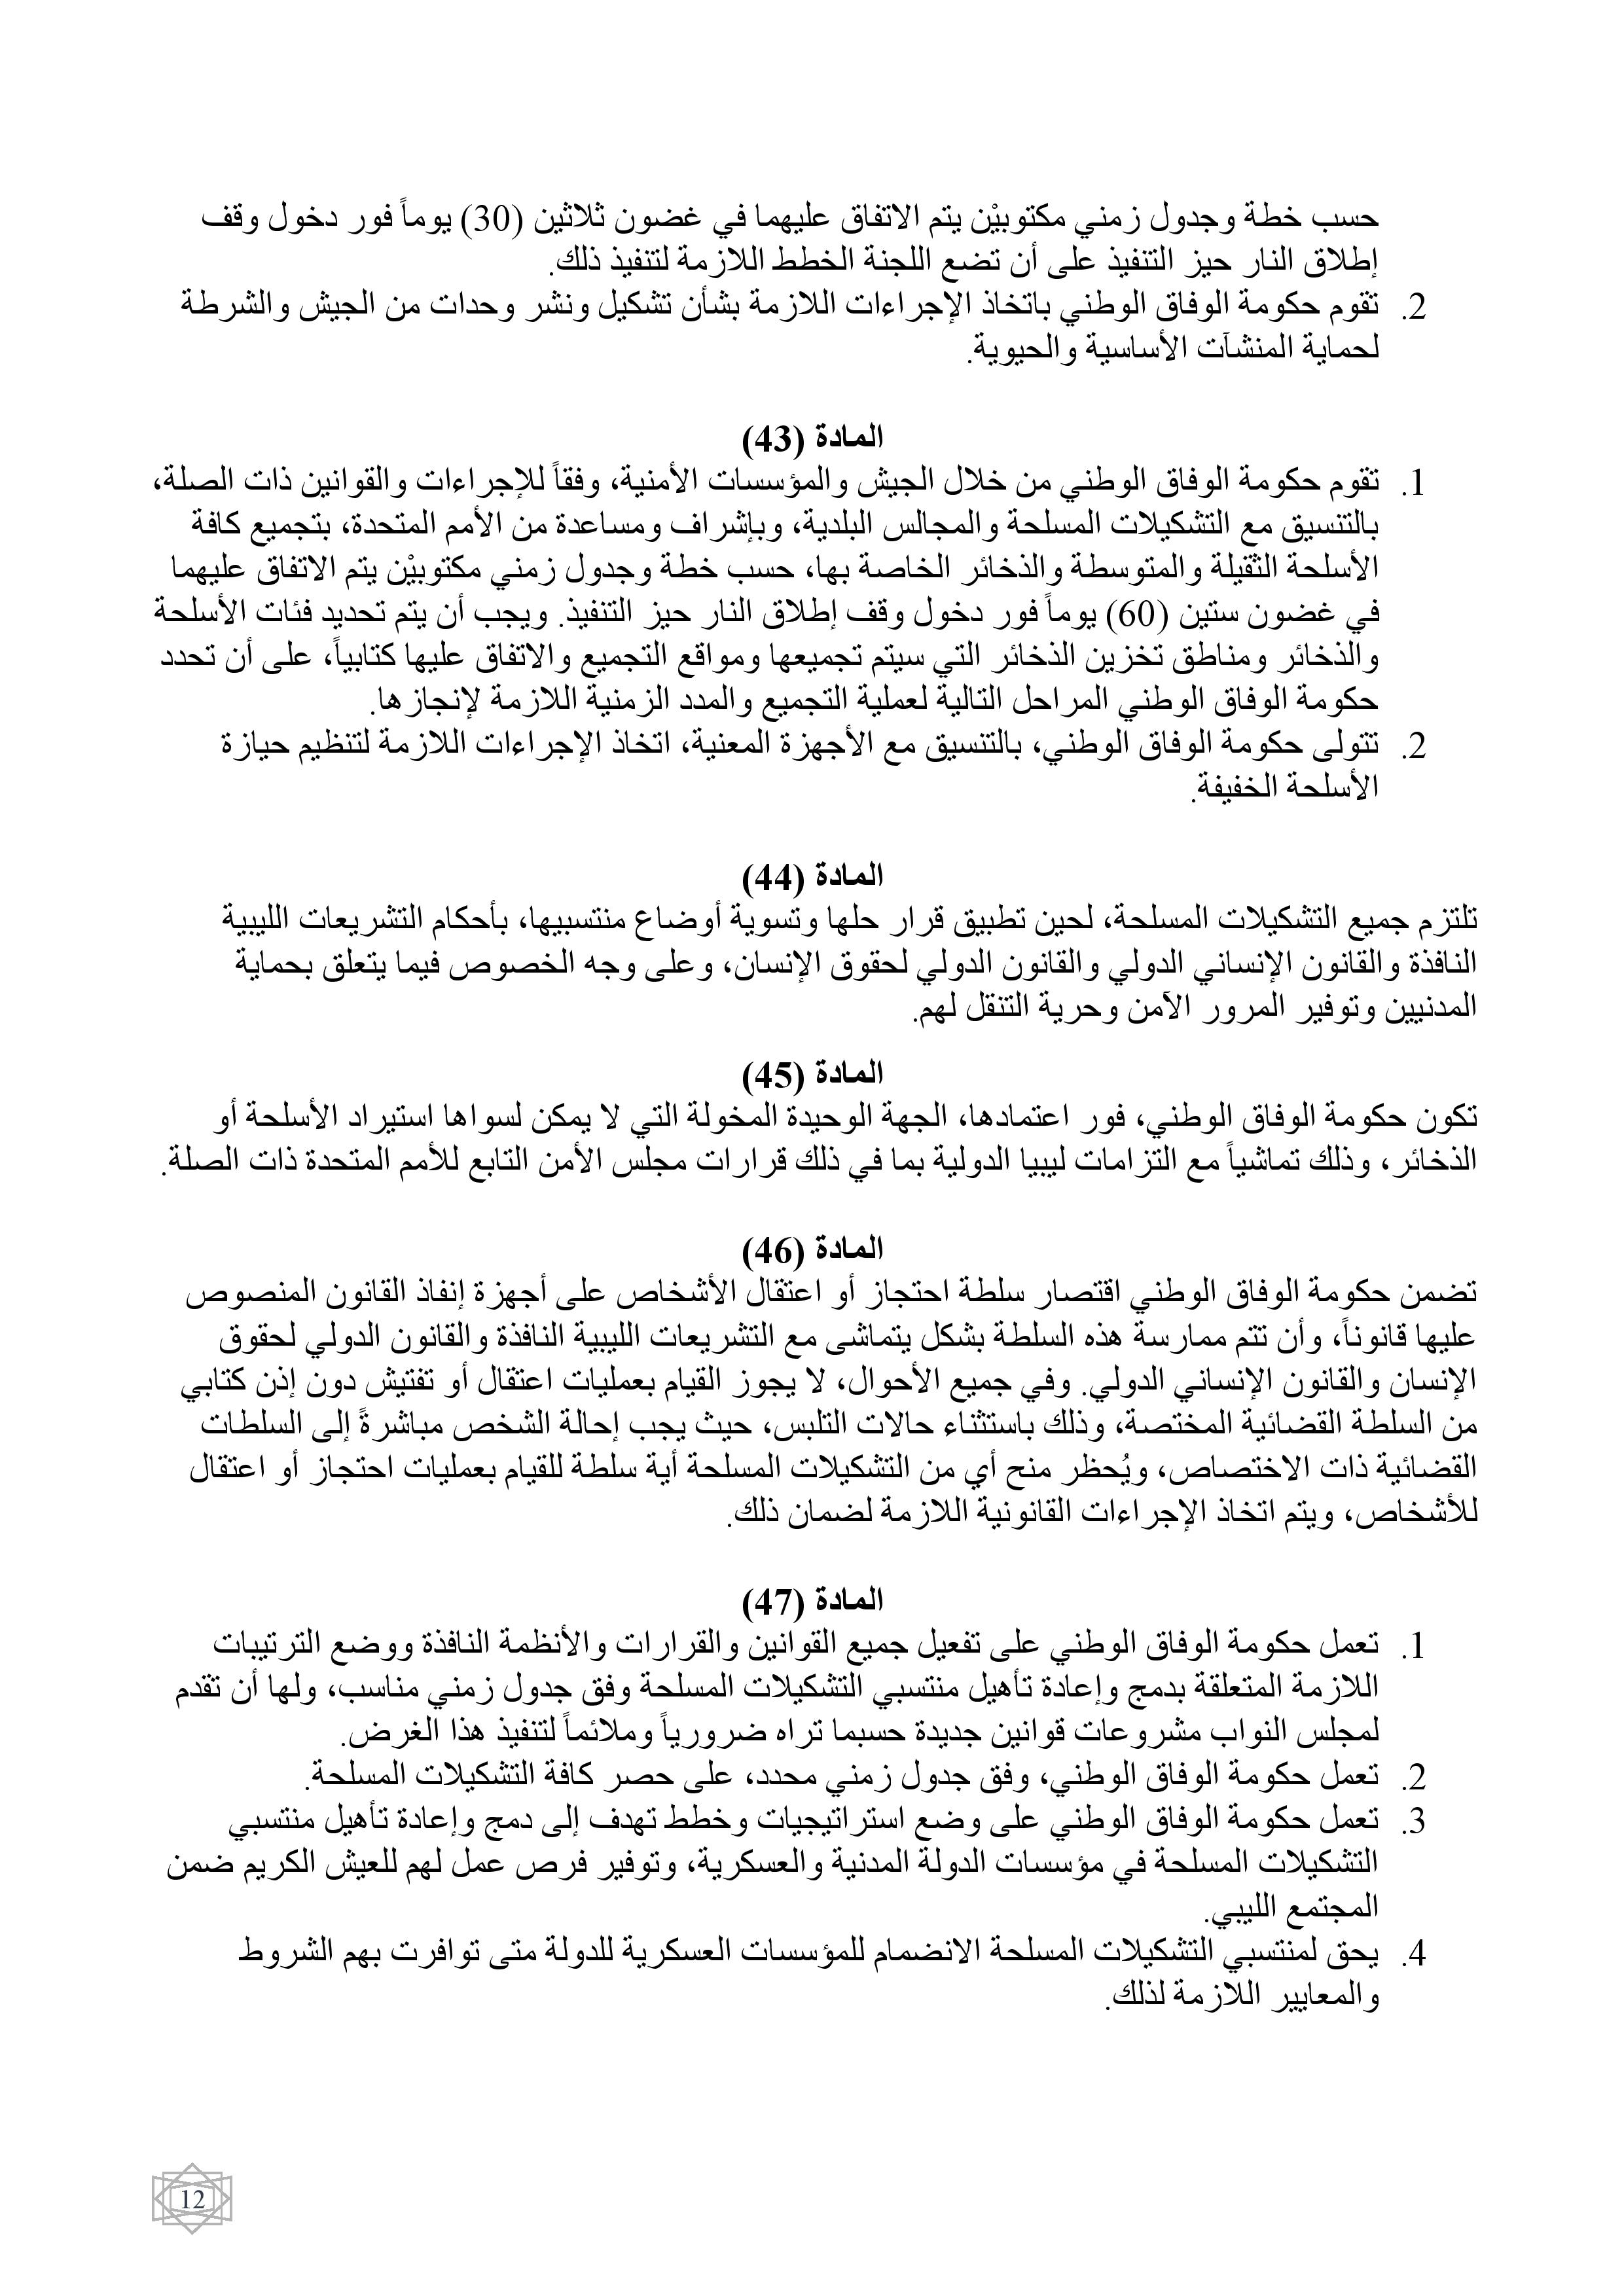 Libyan agreement-page-013